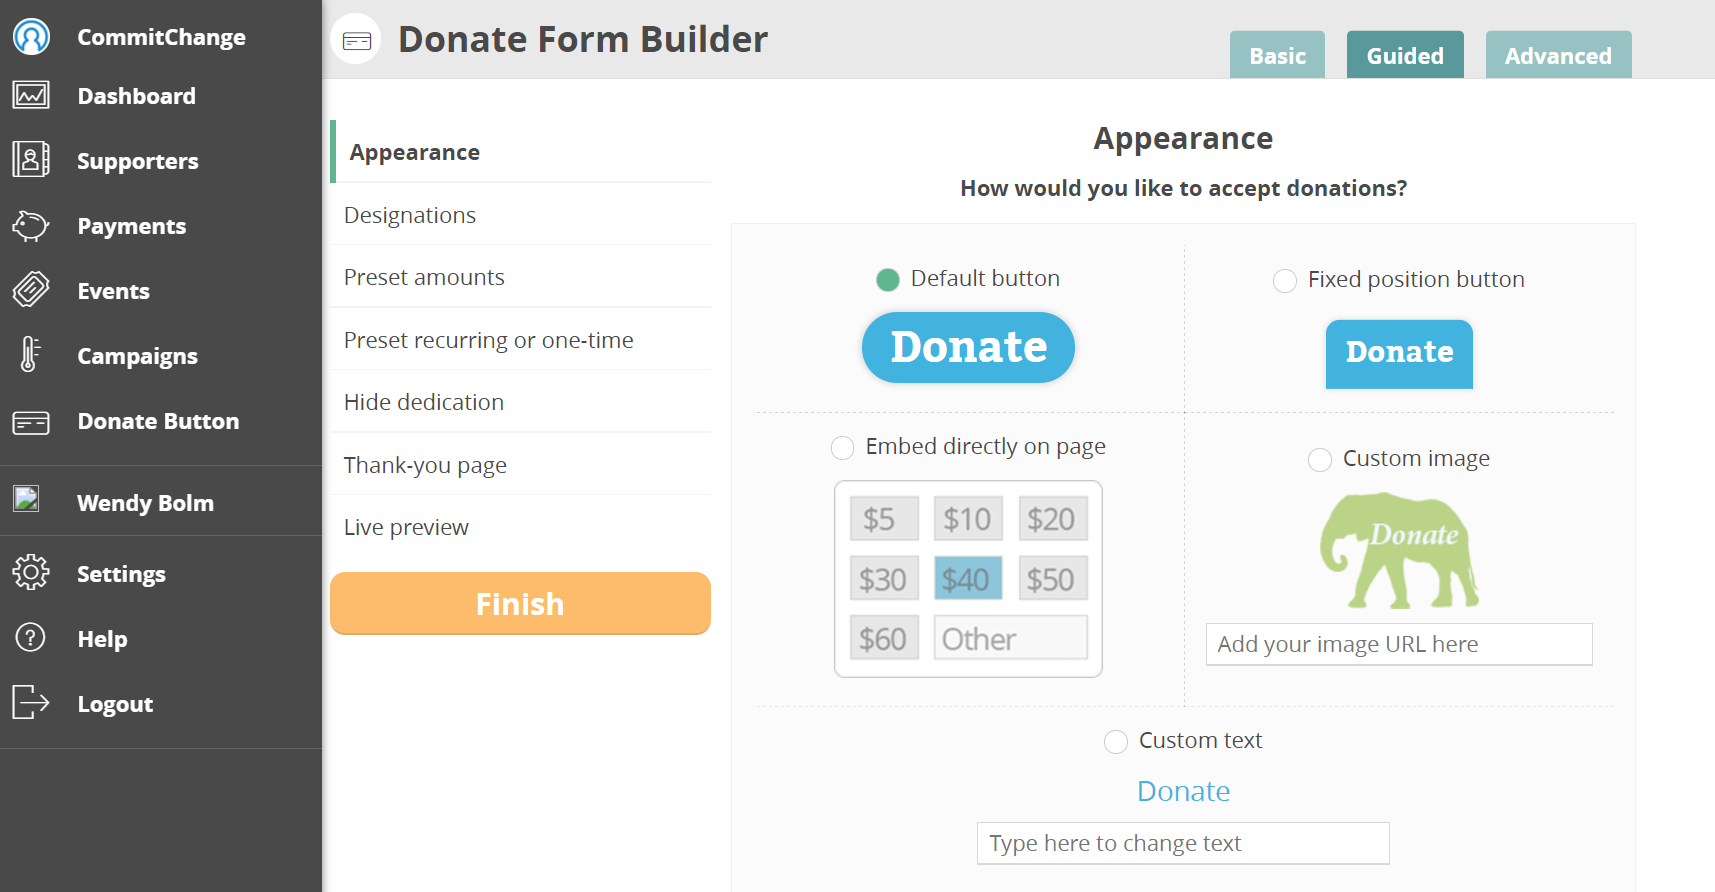 CommitChange Donate Button Builder